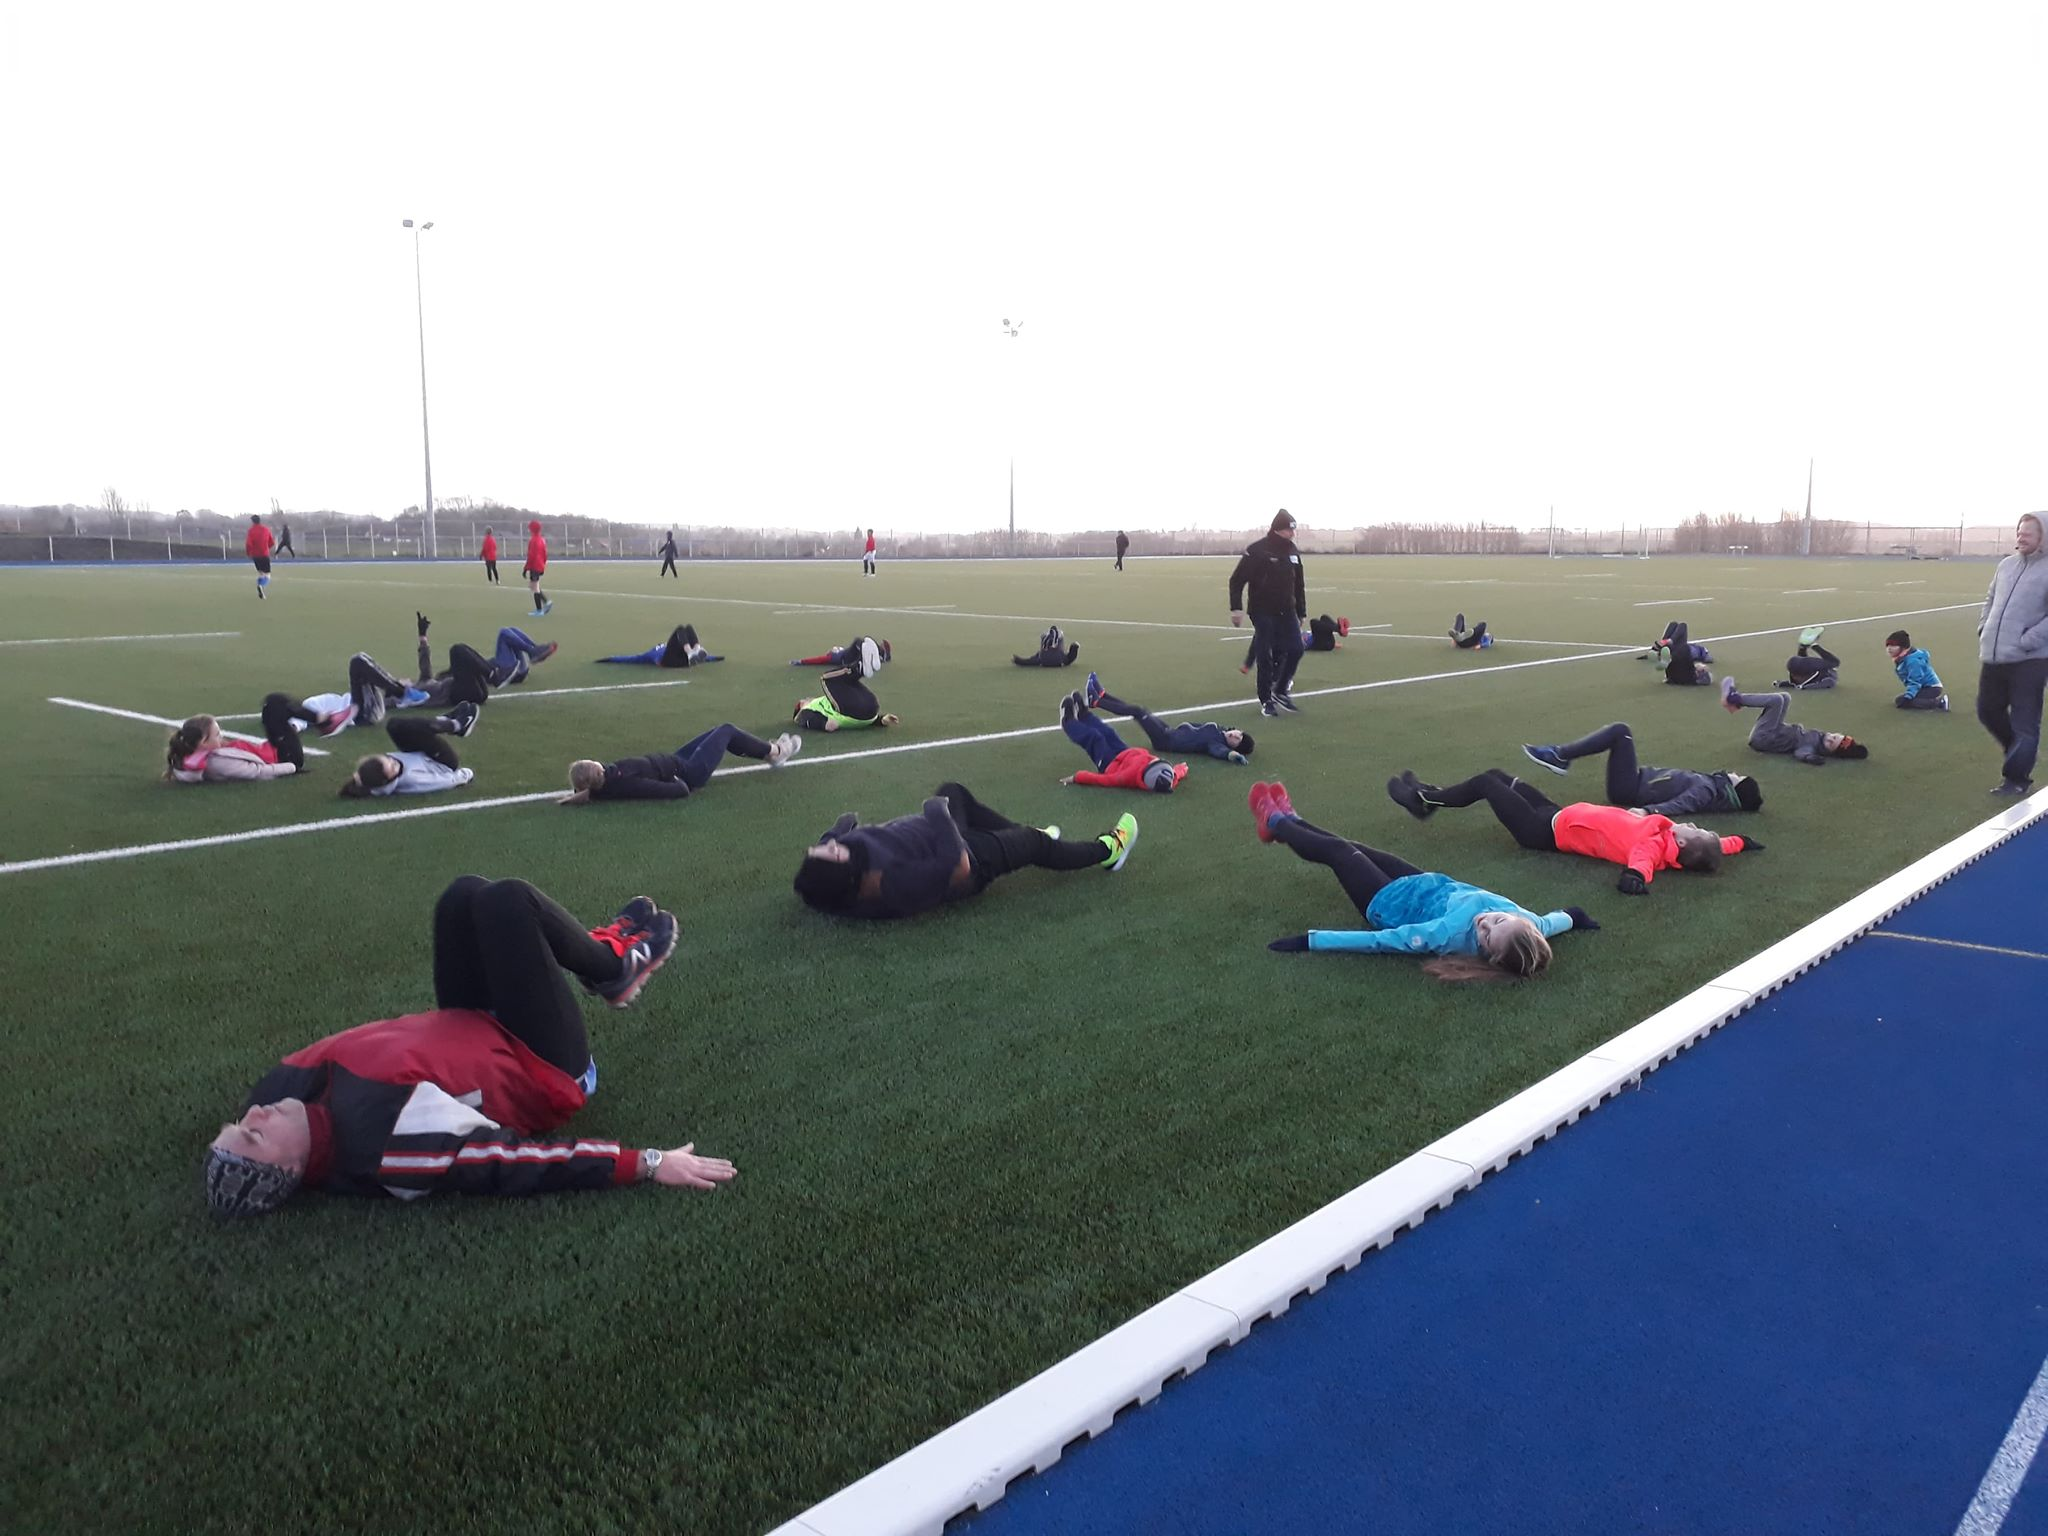 11/02/2020 Entrainements exercice